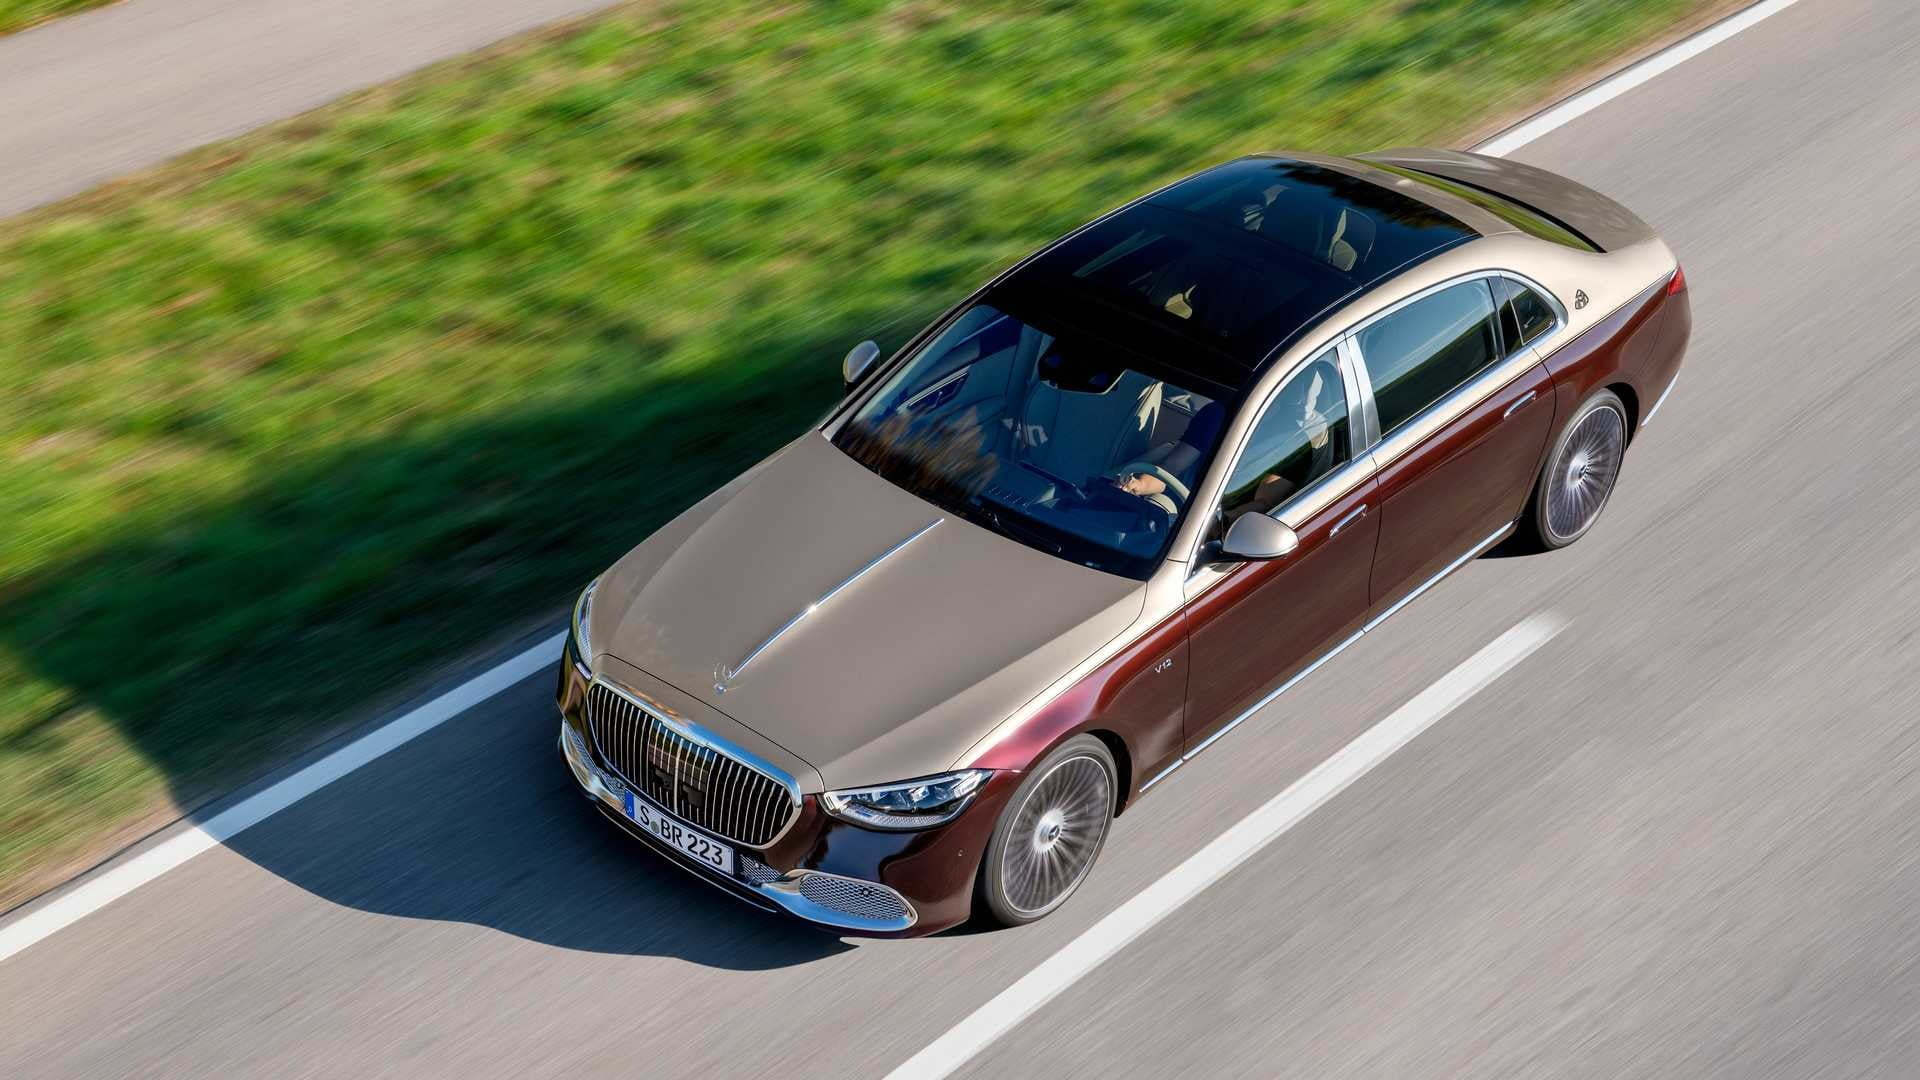 2022 Mercedes-Benz Maybach S680 crystal roof